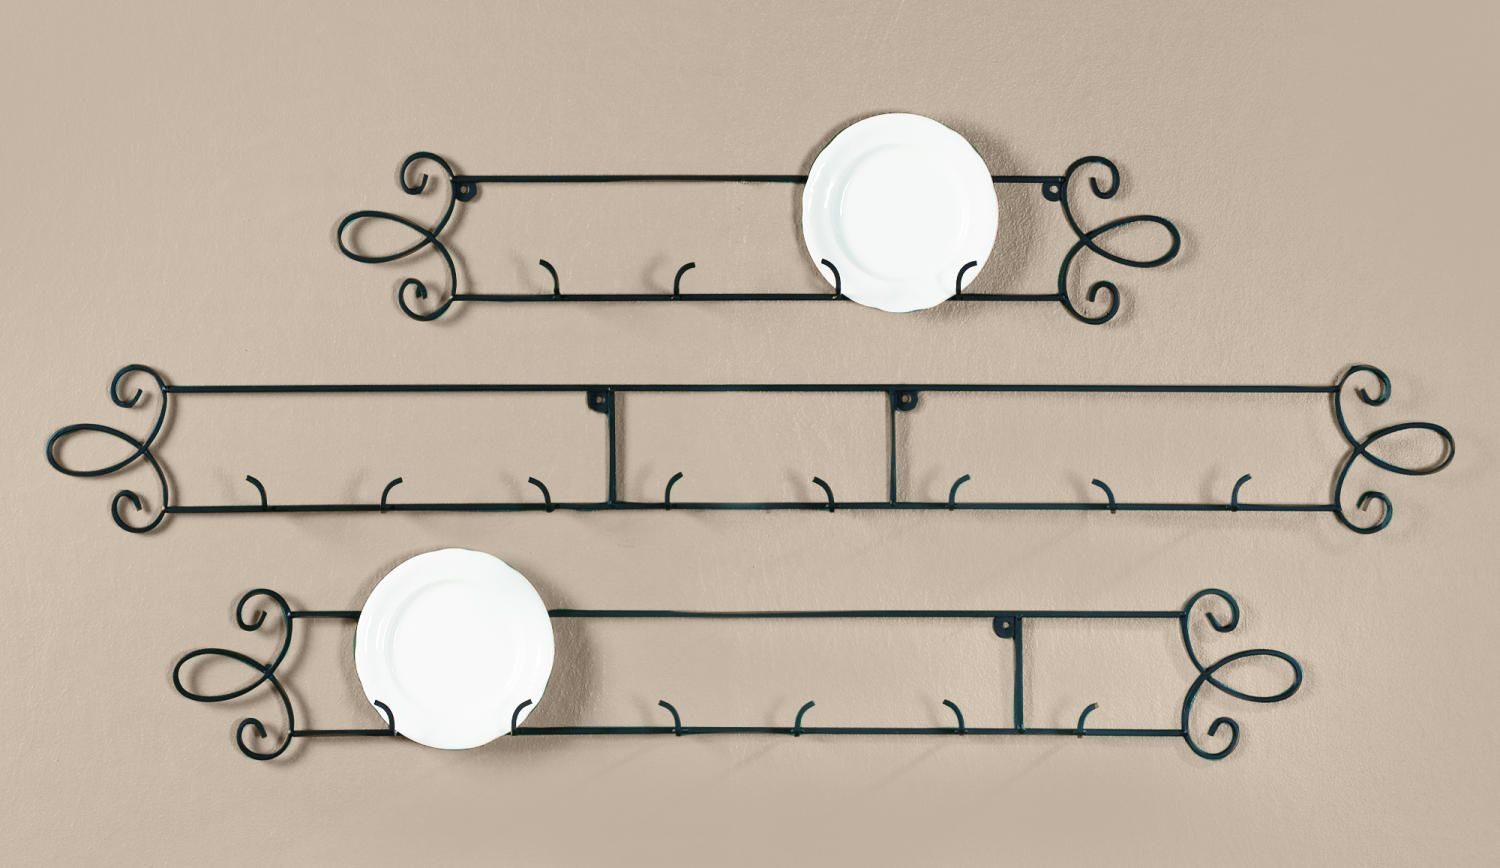 Augusta Black Horizontal Plate Racks (Plate Racks (Wall)) - I ordered one of these and have it installed to hold my new Fiesta appetizer plates for display!  sc 1 st  Pinterest & Augusta Black Horizontal Plate Racks (Plate Racks (Wall)) - I ...